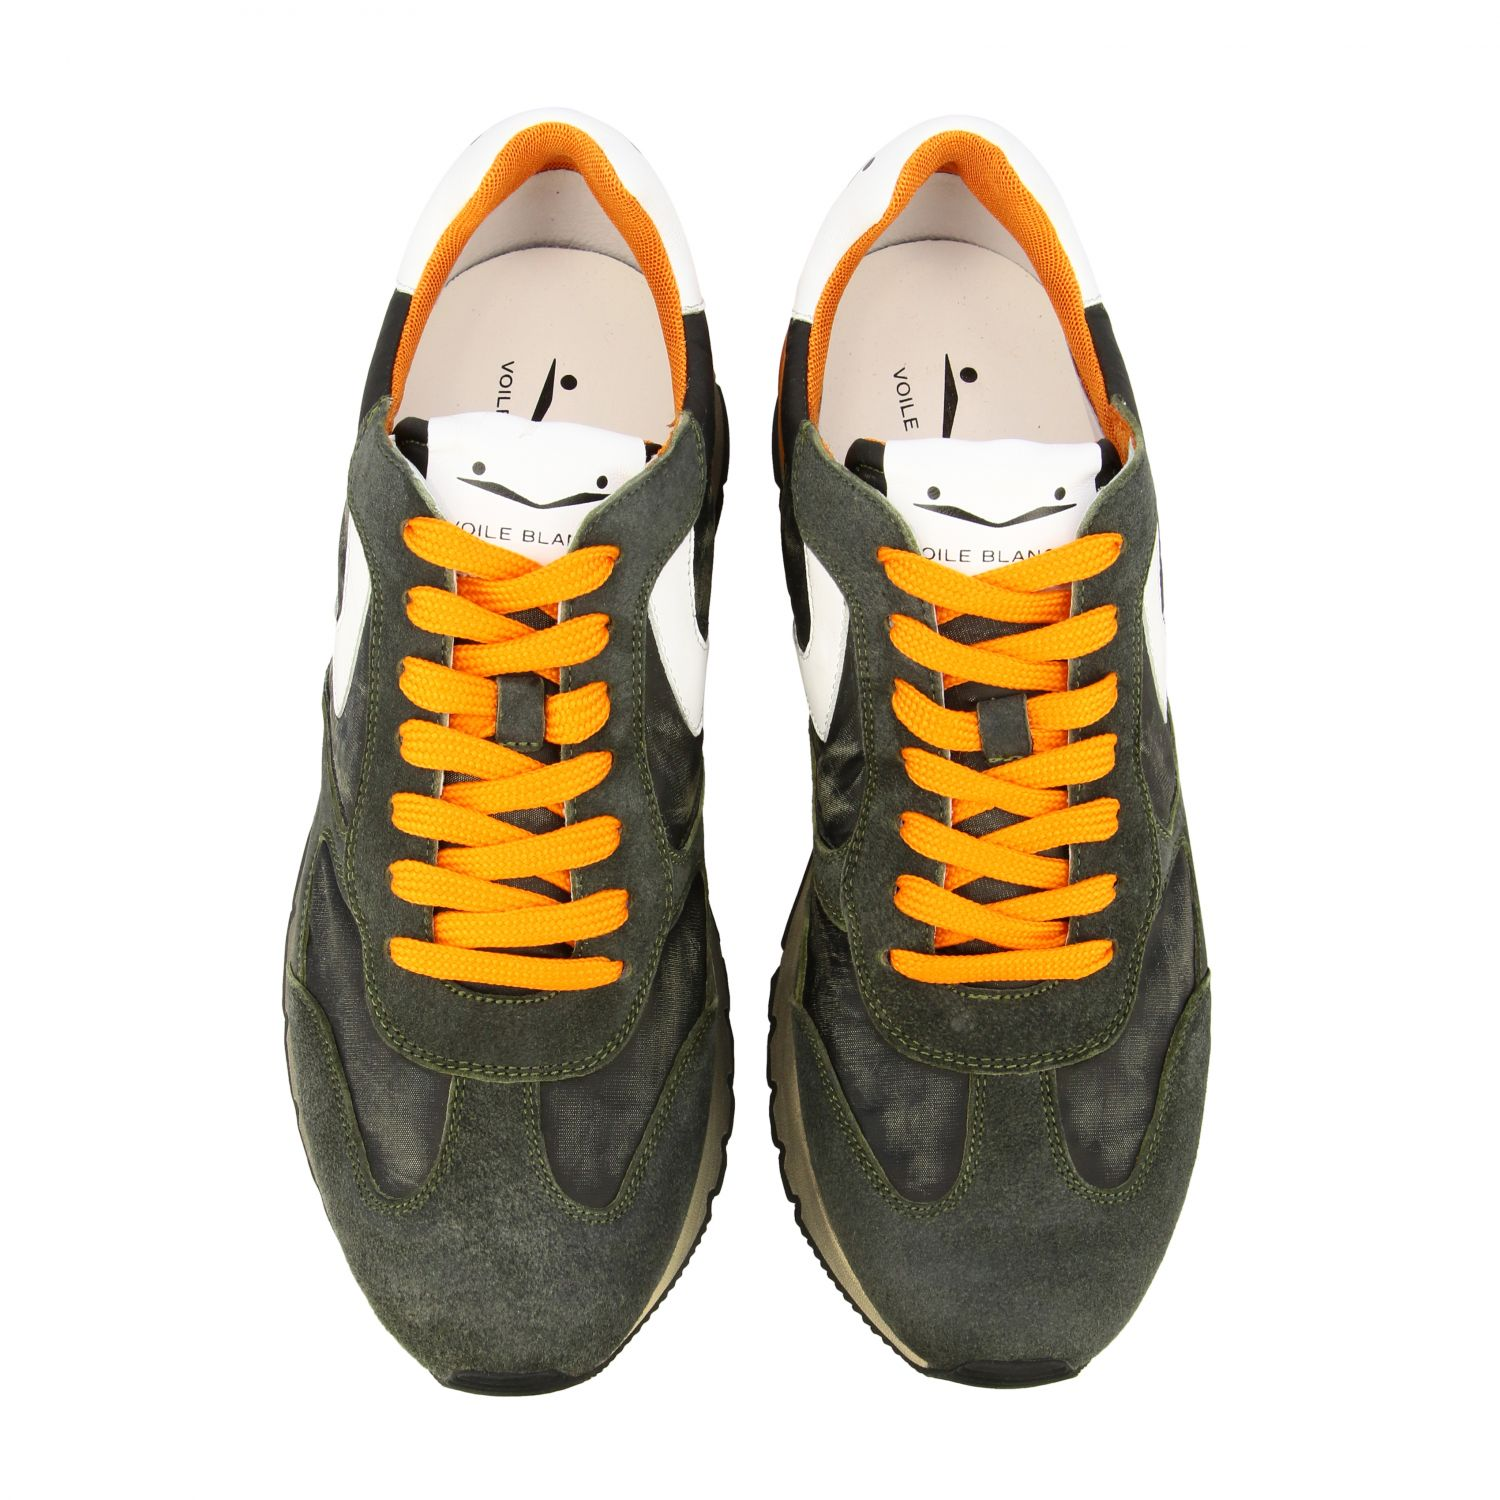 Sneakers men Voile Blanche military 3